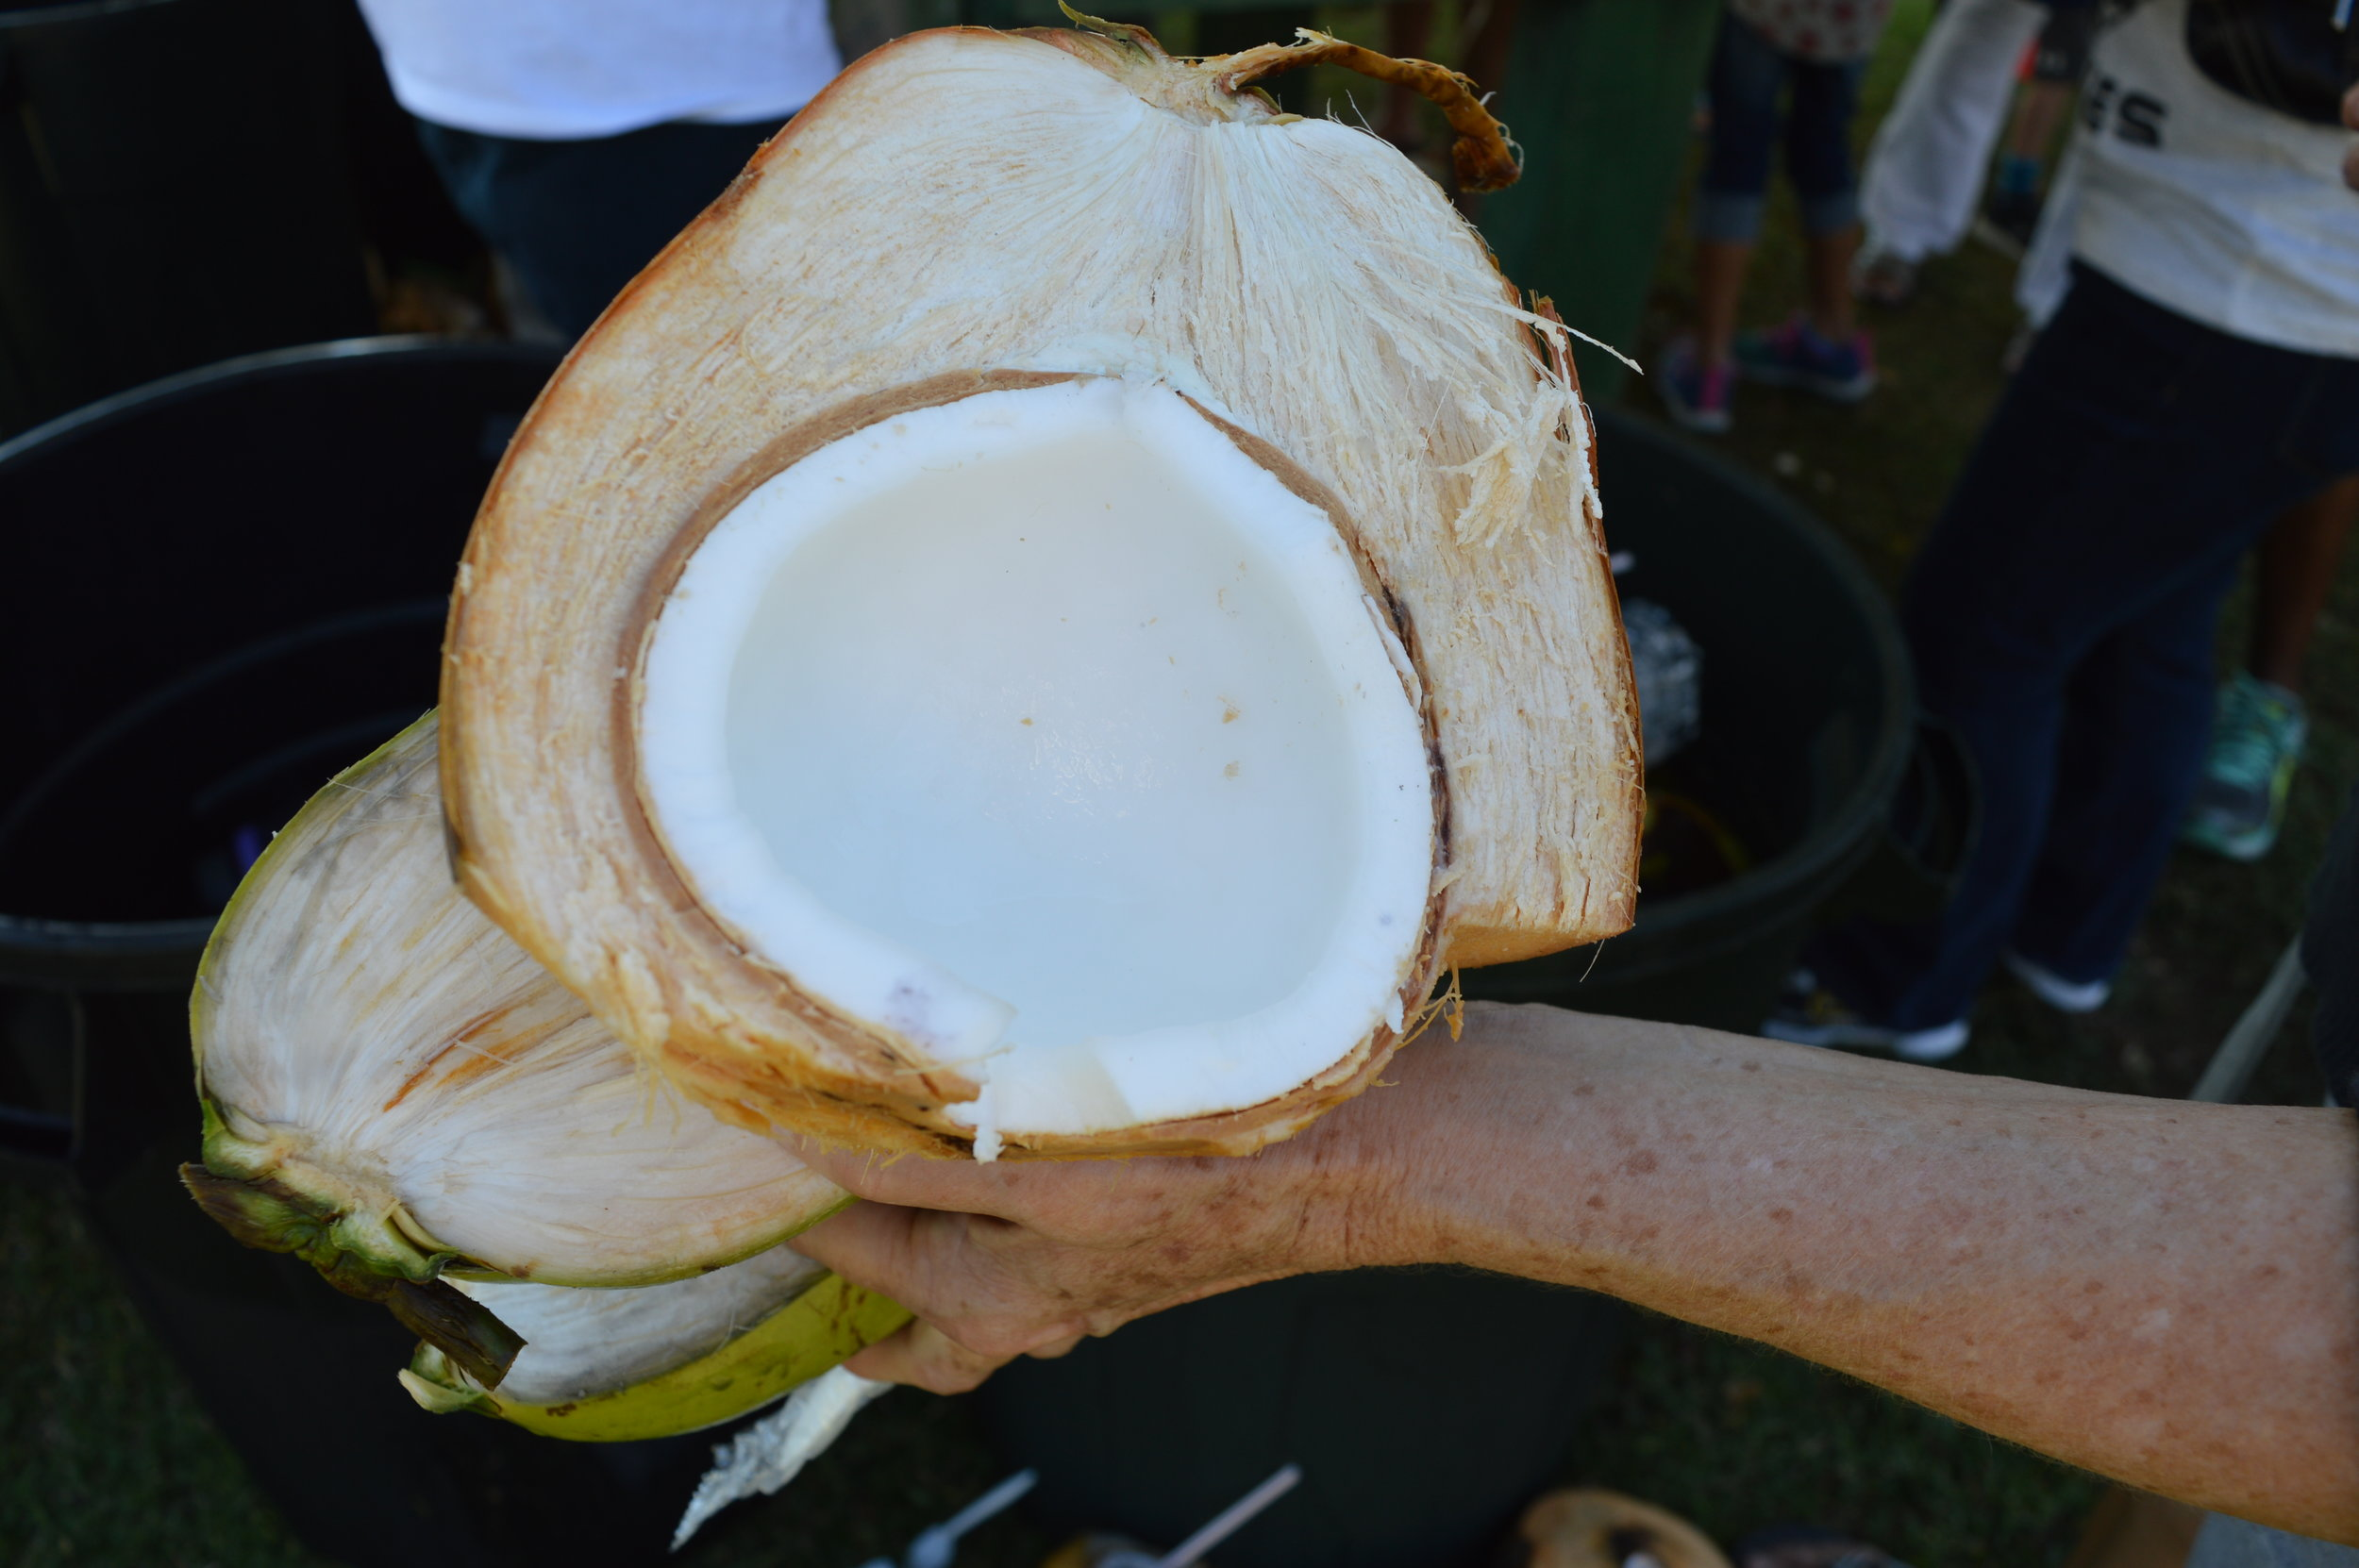 Inch thick fresh coconut meat - can't get no fresha dan dis!